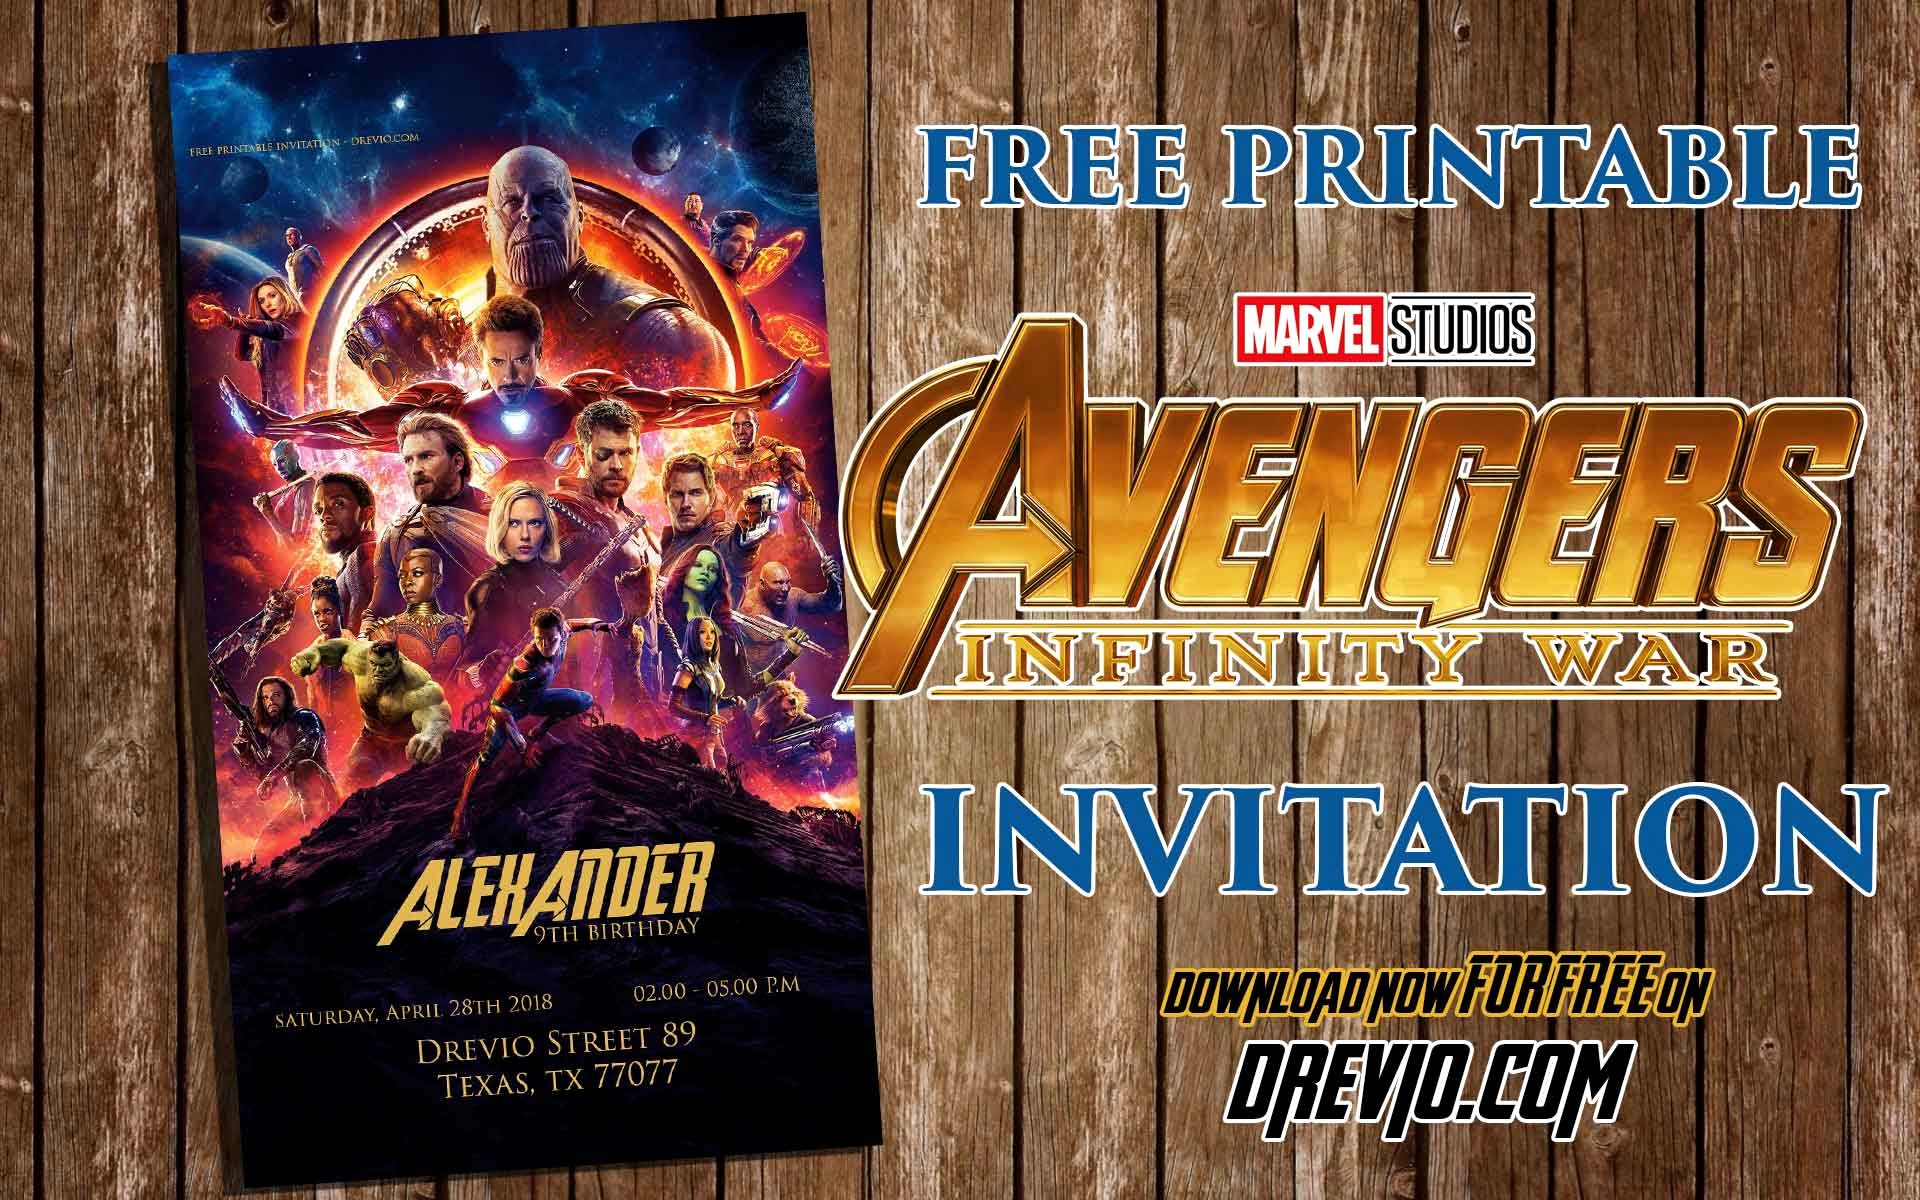 Avengers Invitations Template Free Fresh Free Printable Avengers Infinity Wars Birthday Invitation